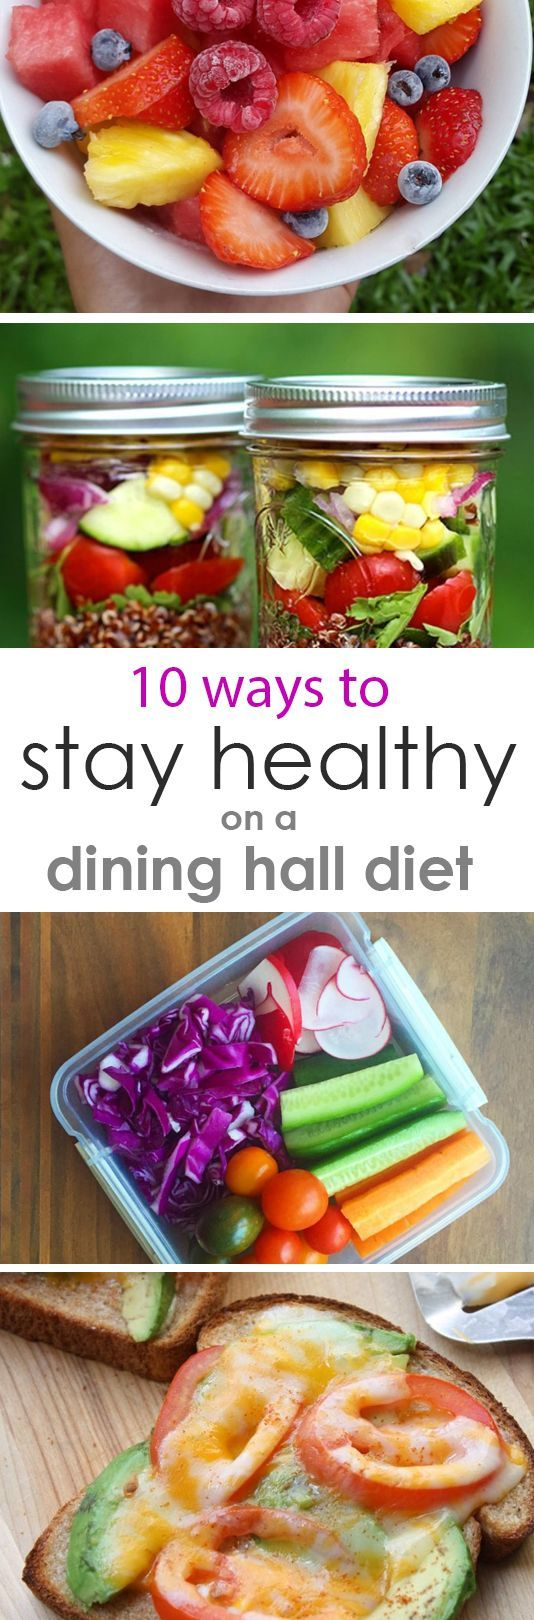 10 Ways to Stay Healthy on a College Dining Hall Diet